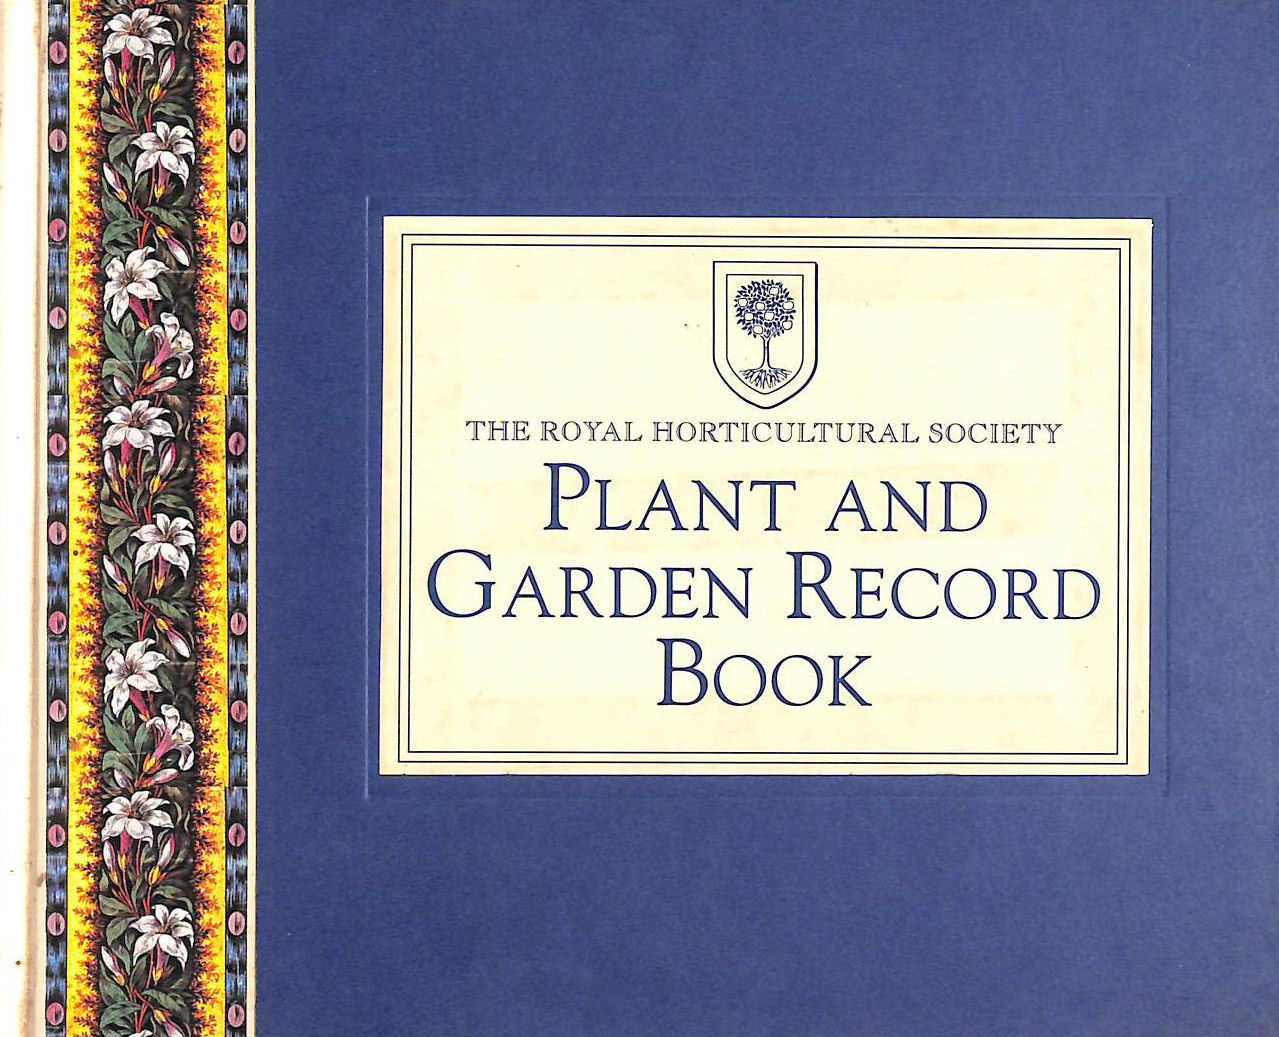 Image for Royal Horticultural Society Plant And Garden Record Book